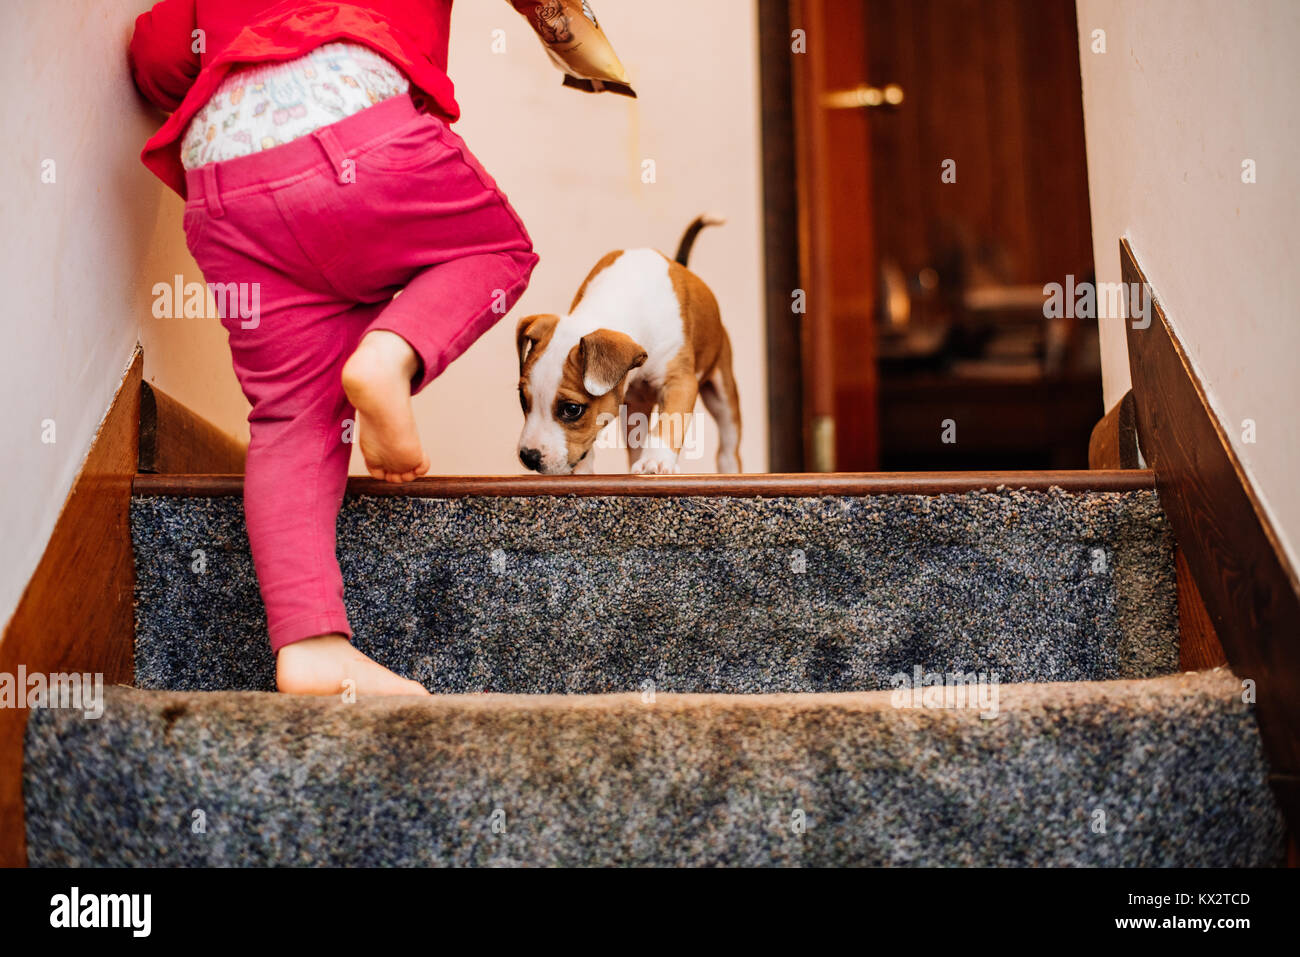 A toddler girl walks up the stairs while a puppy walks toward her. - Stock Image